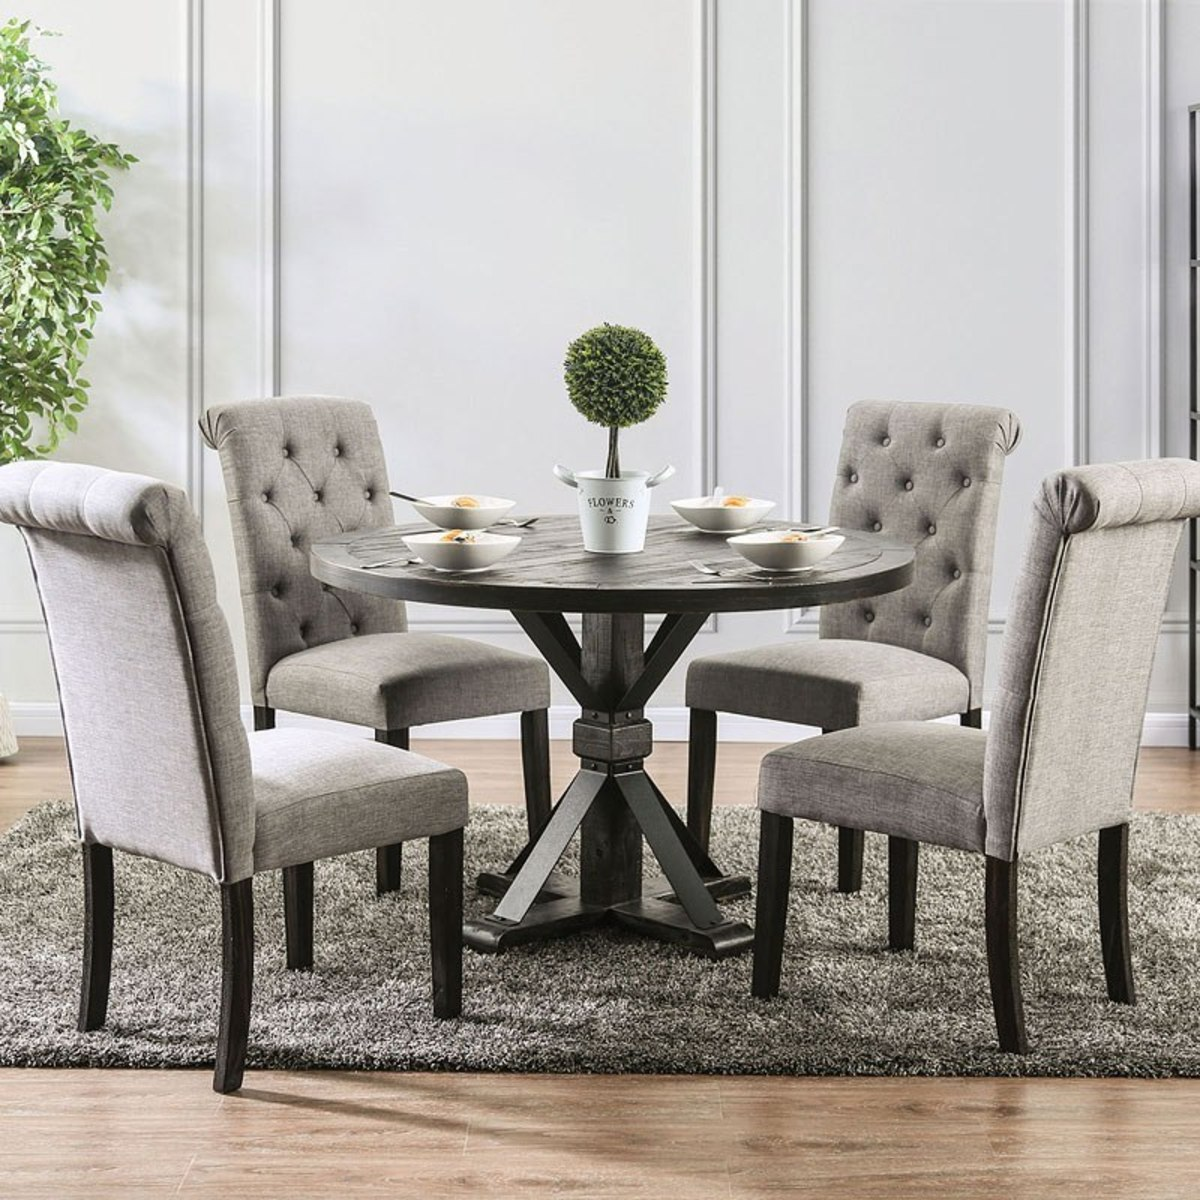 Featuring a wood table top, pedestal base, and metal accents, the table has a timeless look you will enjoy for years to come.